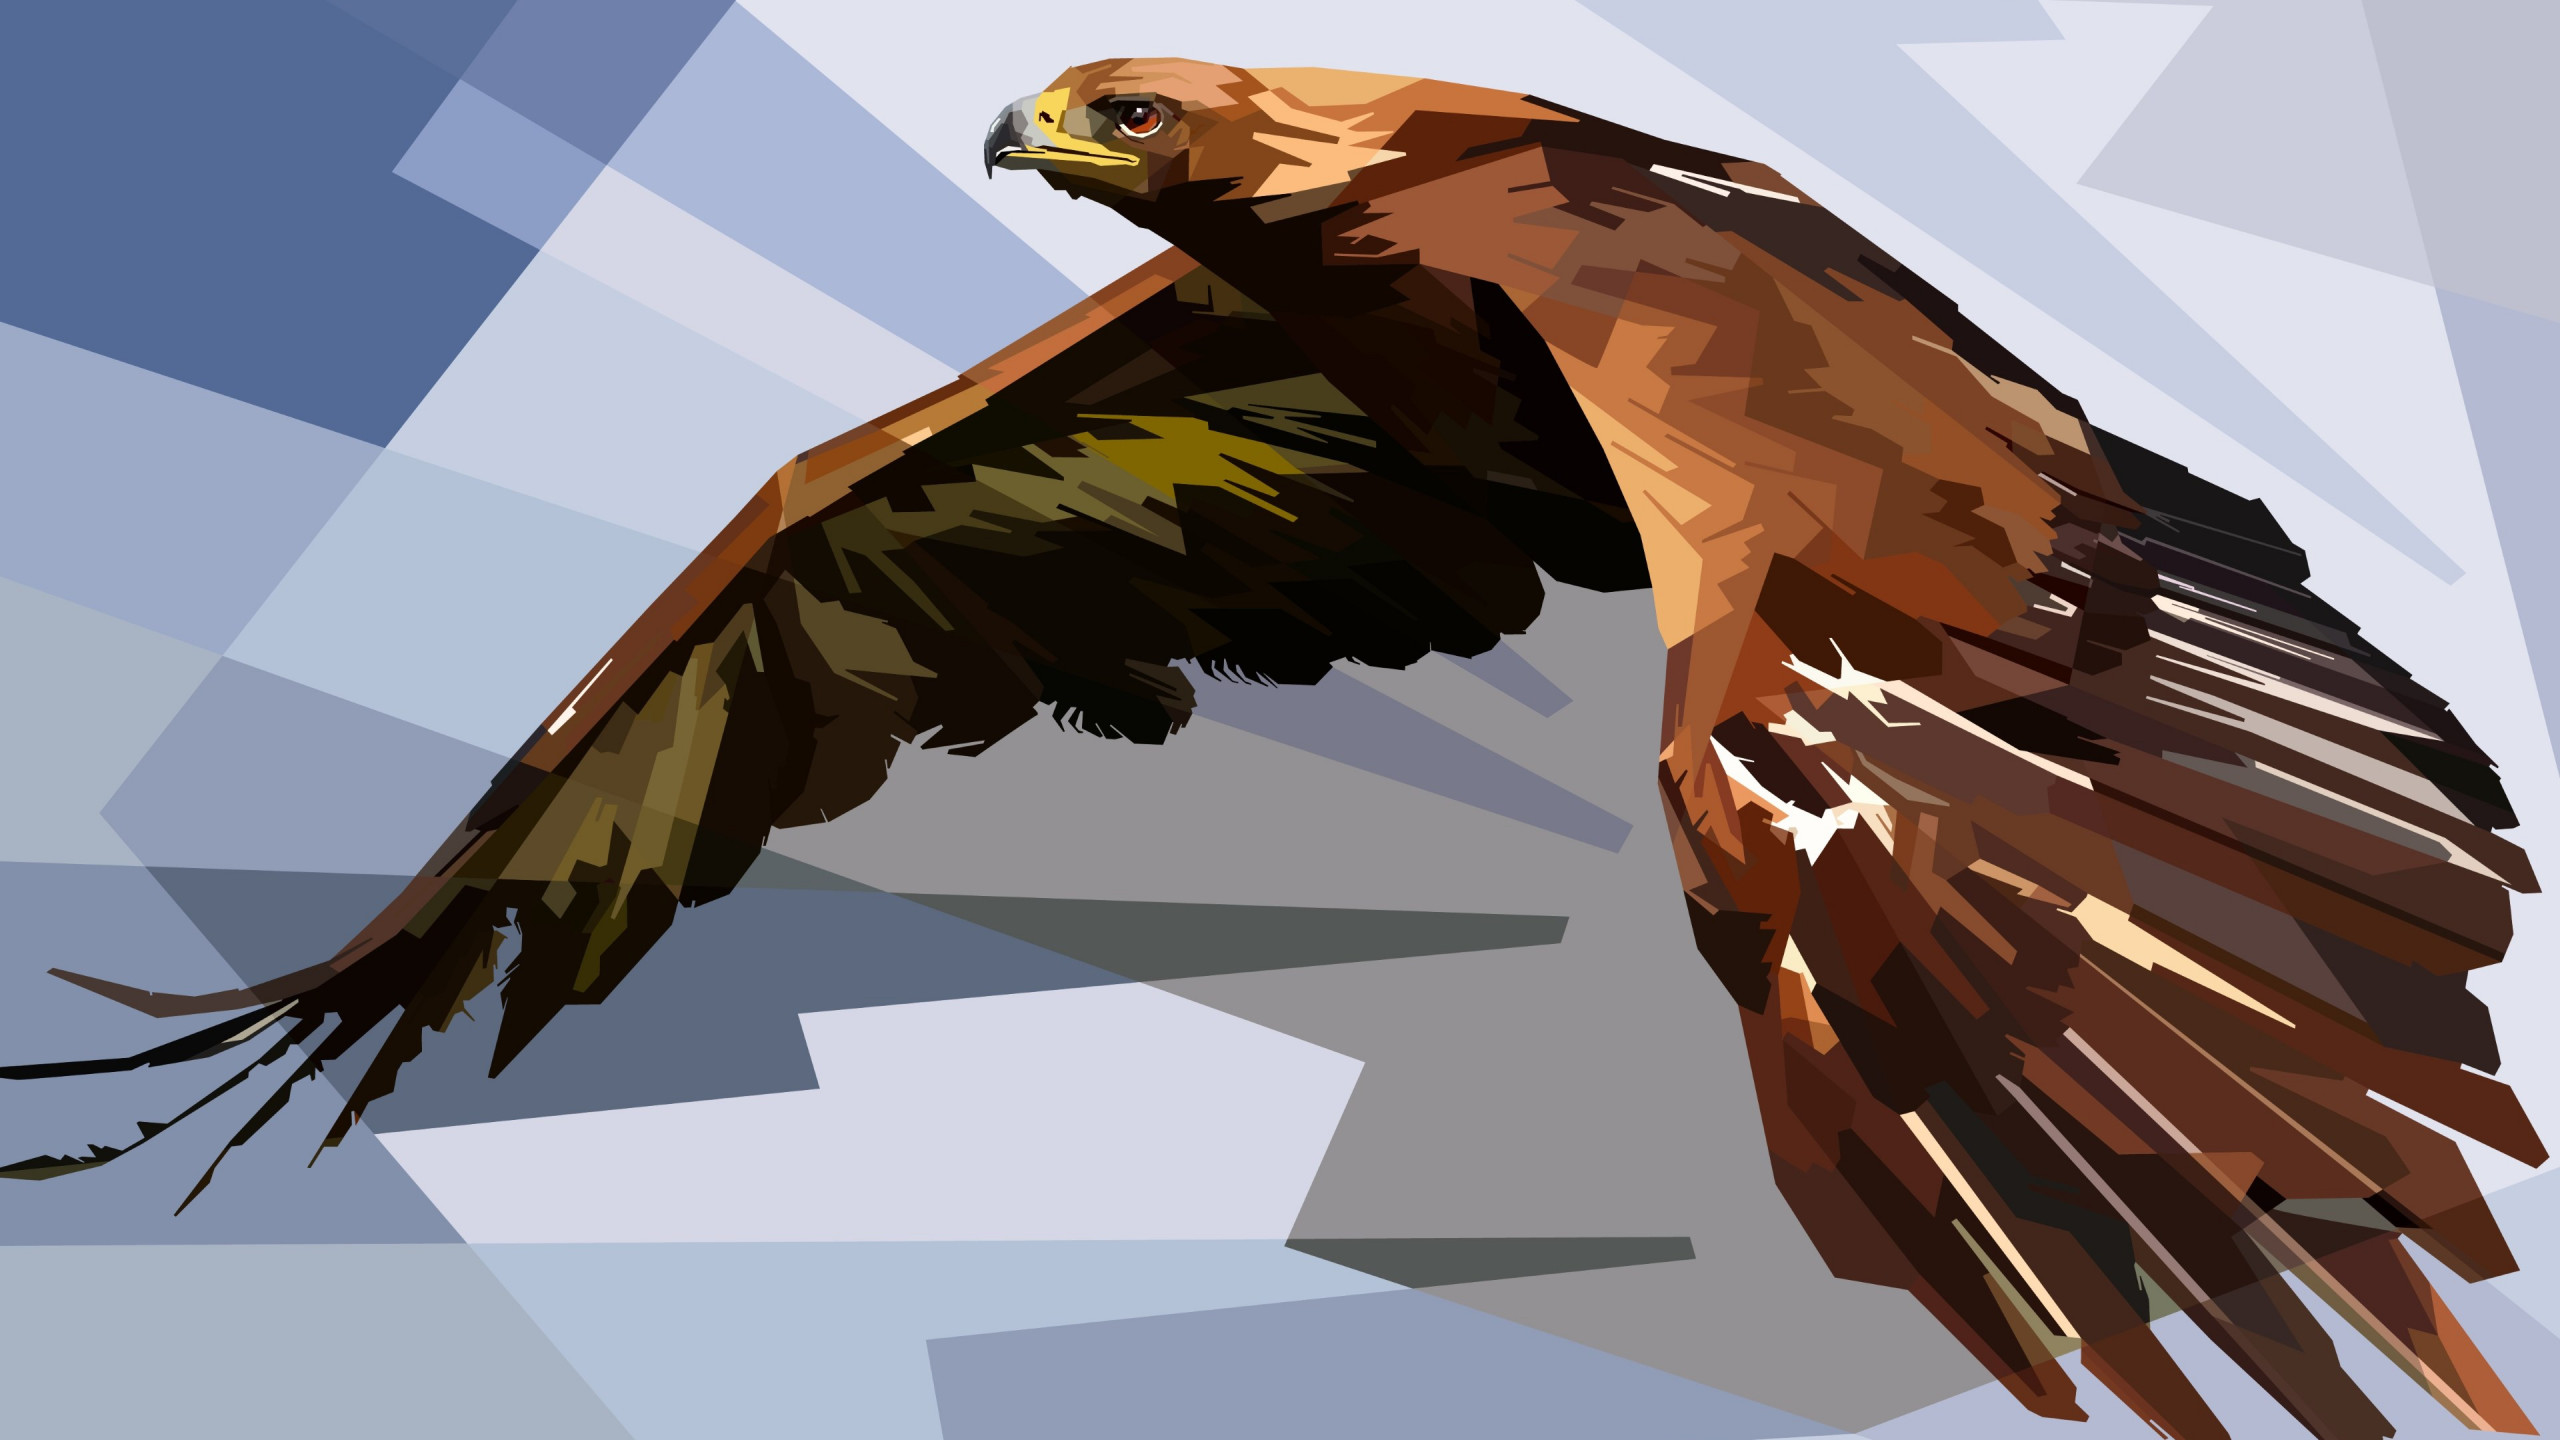 Digital drawing of an eagle wallpaper 2560x1440